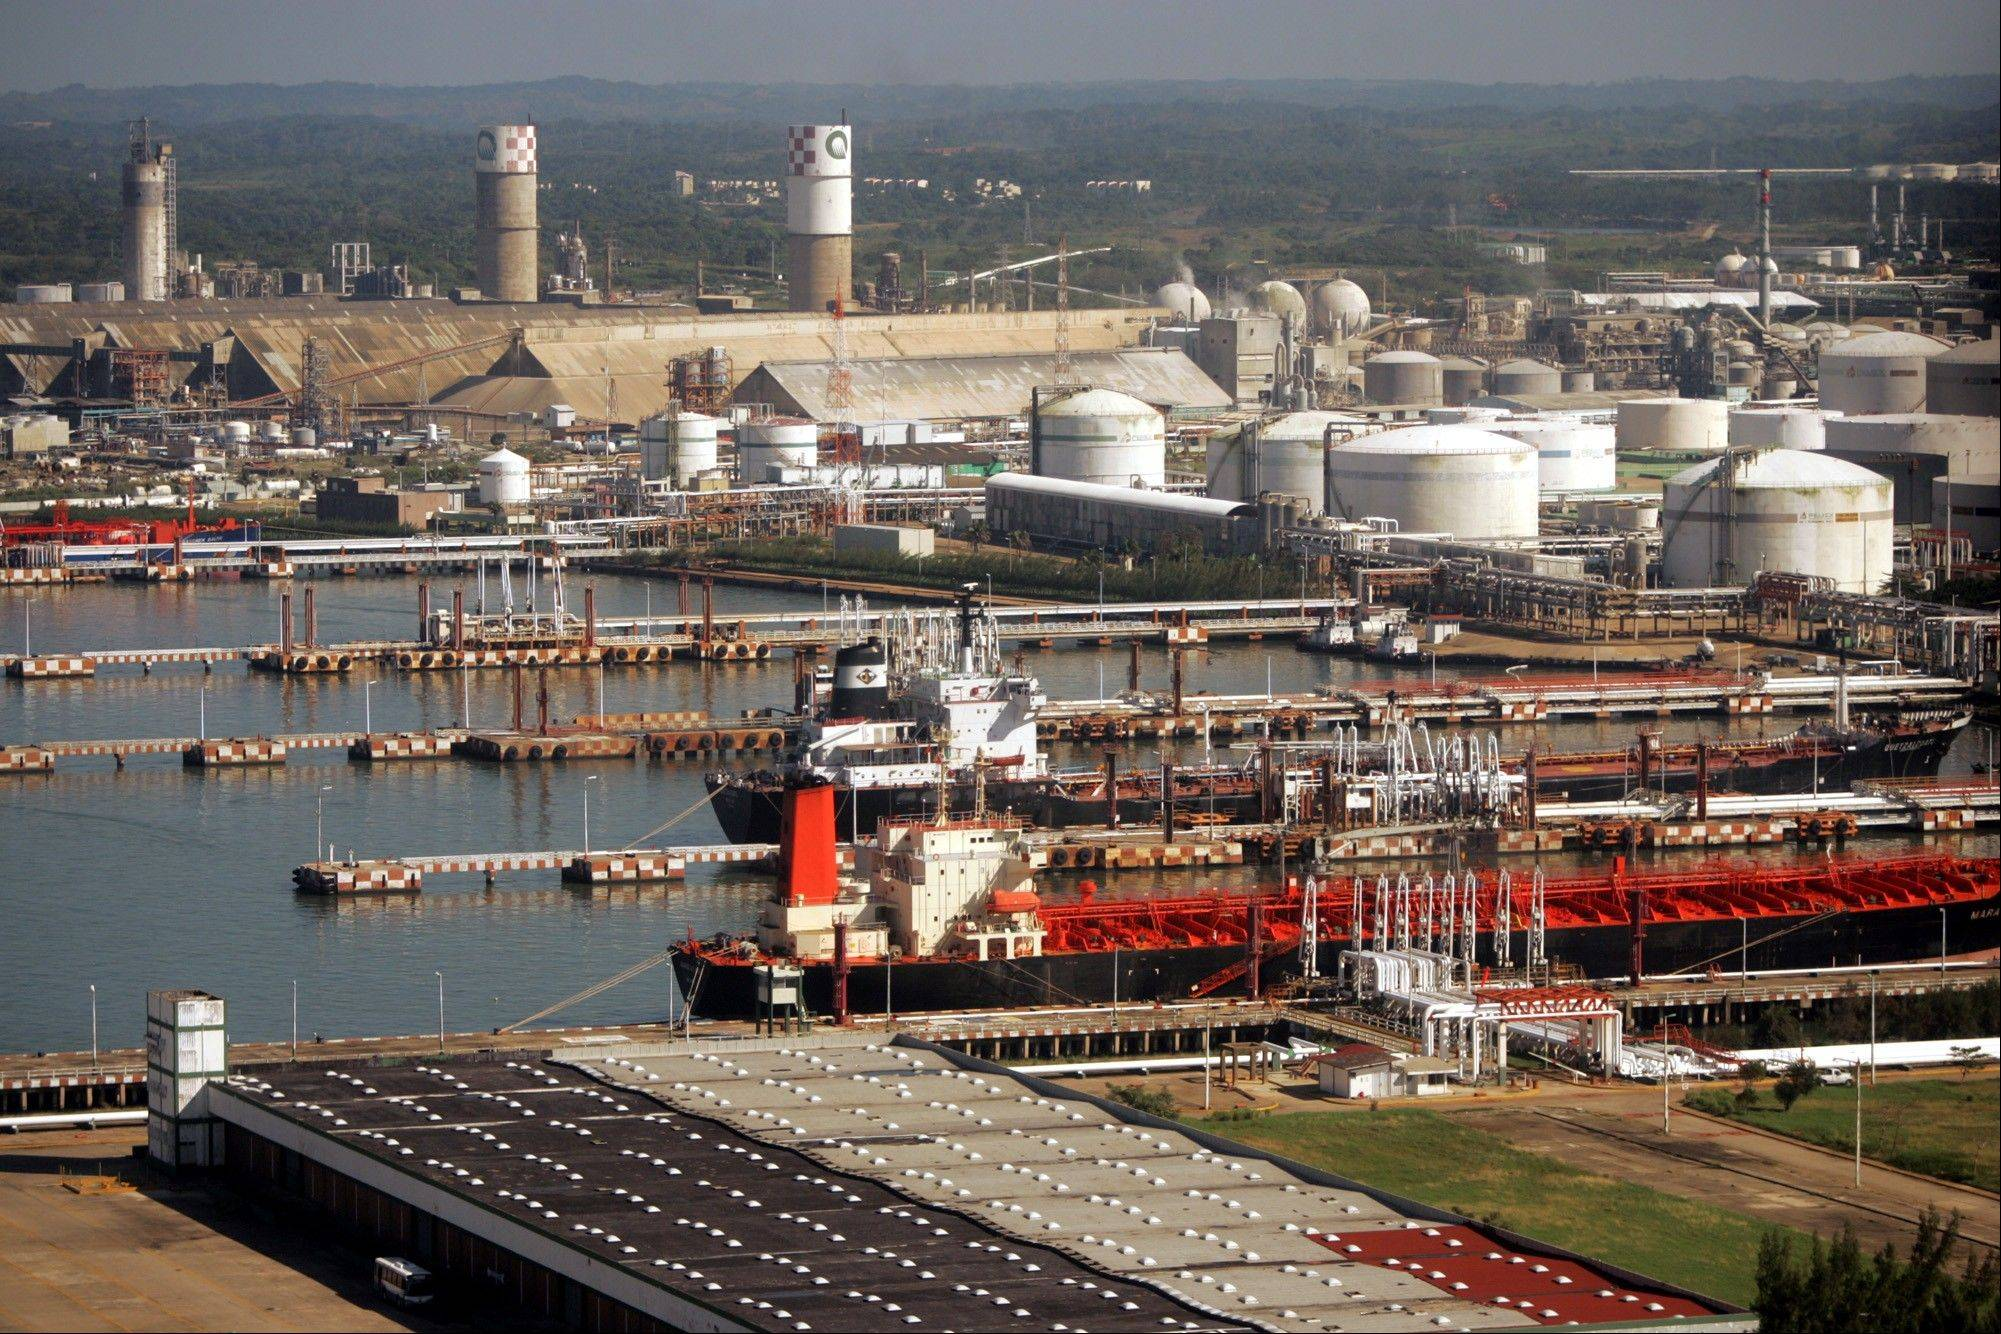 Los Pajaritos petrochemical complex that belongs to Mexico's state-owned oil company Petroleos Mexicanos (Pemex) in Coatzacoalcos in the state of Veracruz, Mexico.